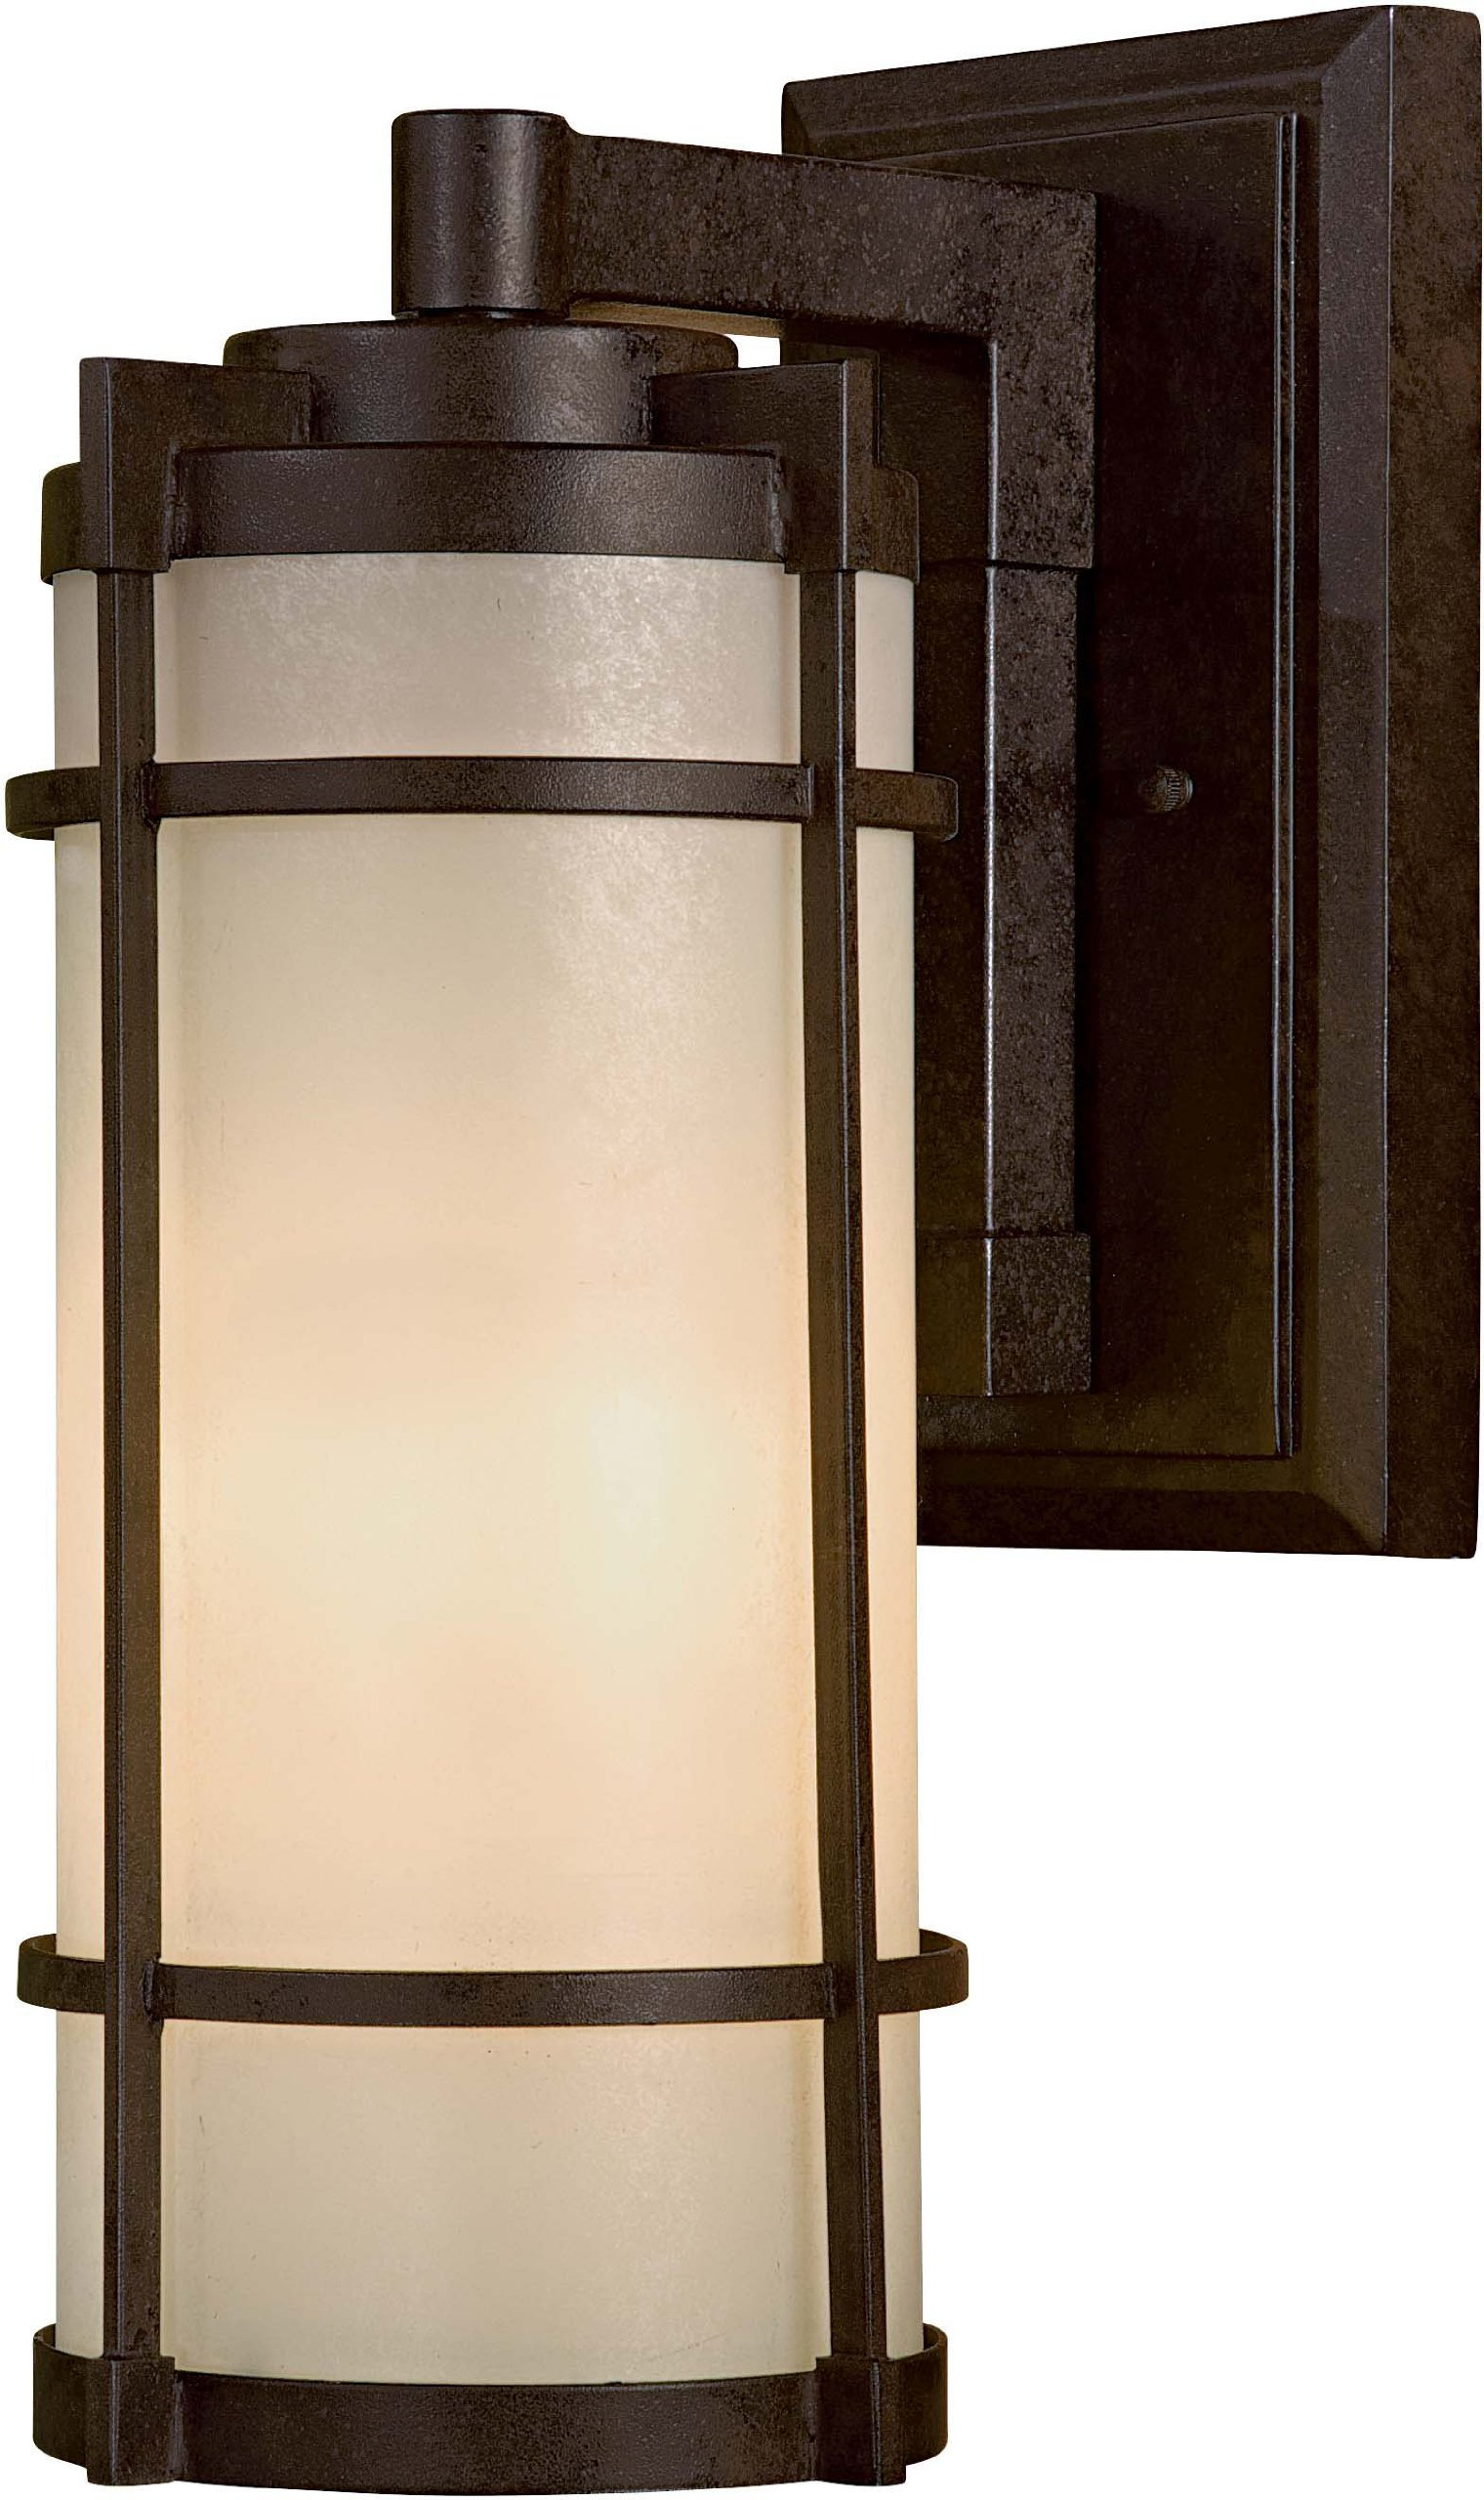 Minka Lavery 72023-A179-PL Andrita Court 1 Light Outdoor Wall Mount, 7'', Textured French Bronze Finish by Minka Lavery